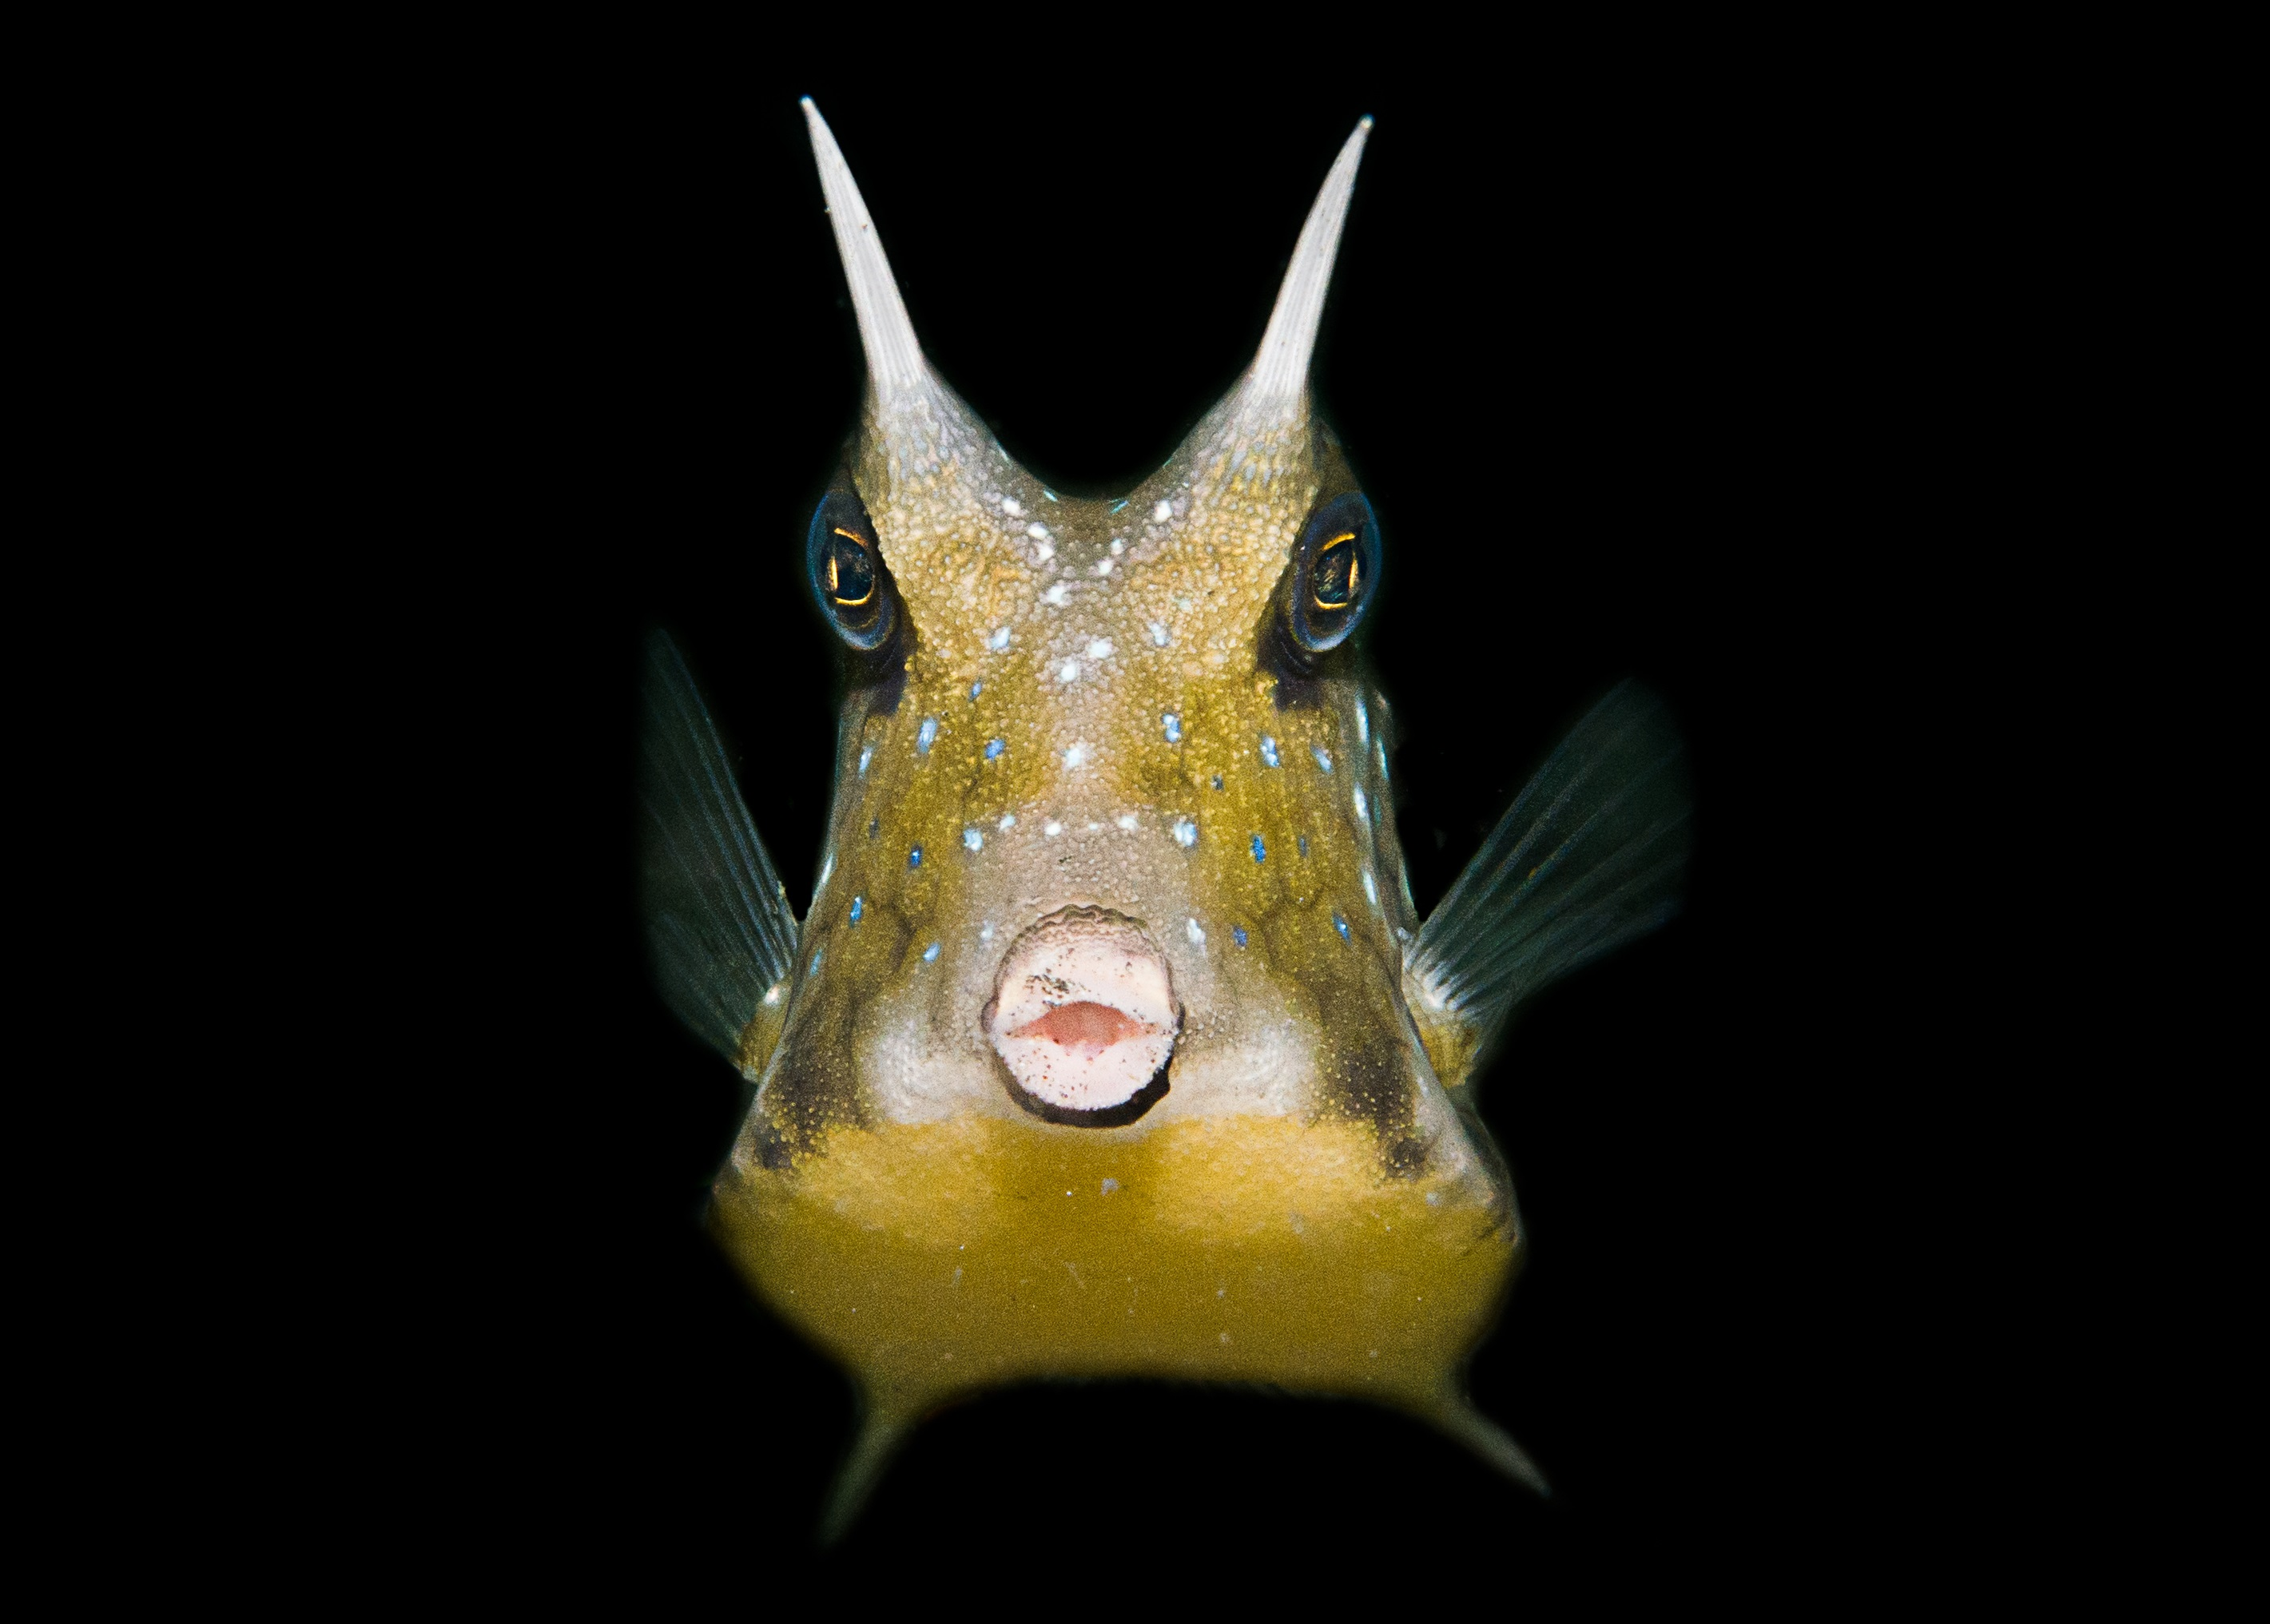 Thornback-cow-fish